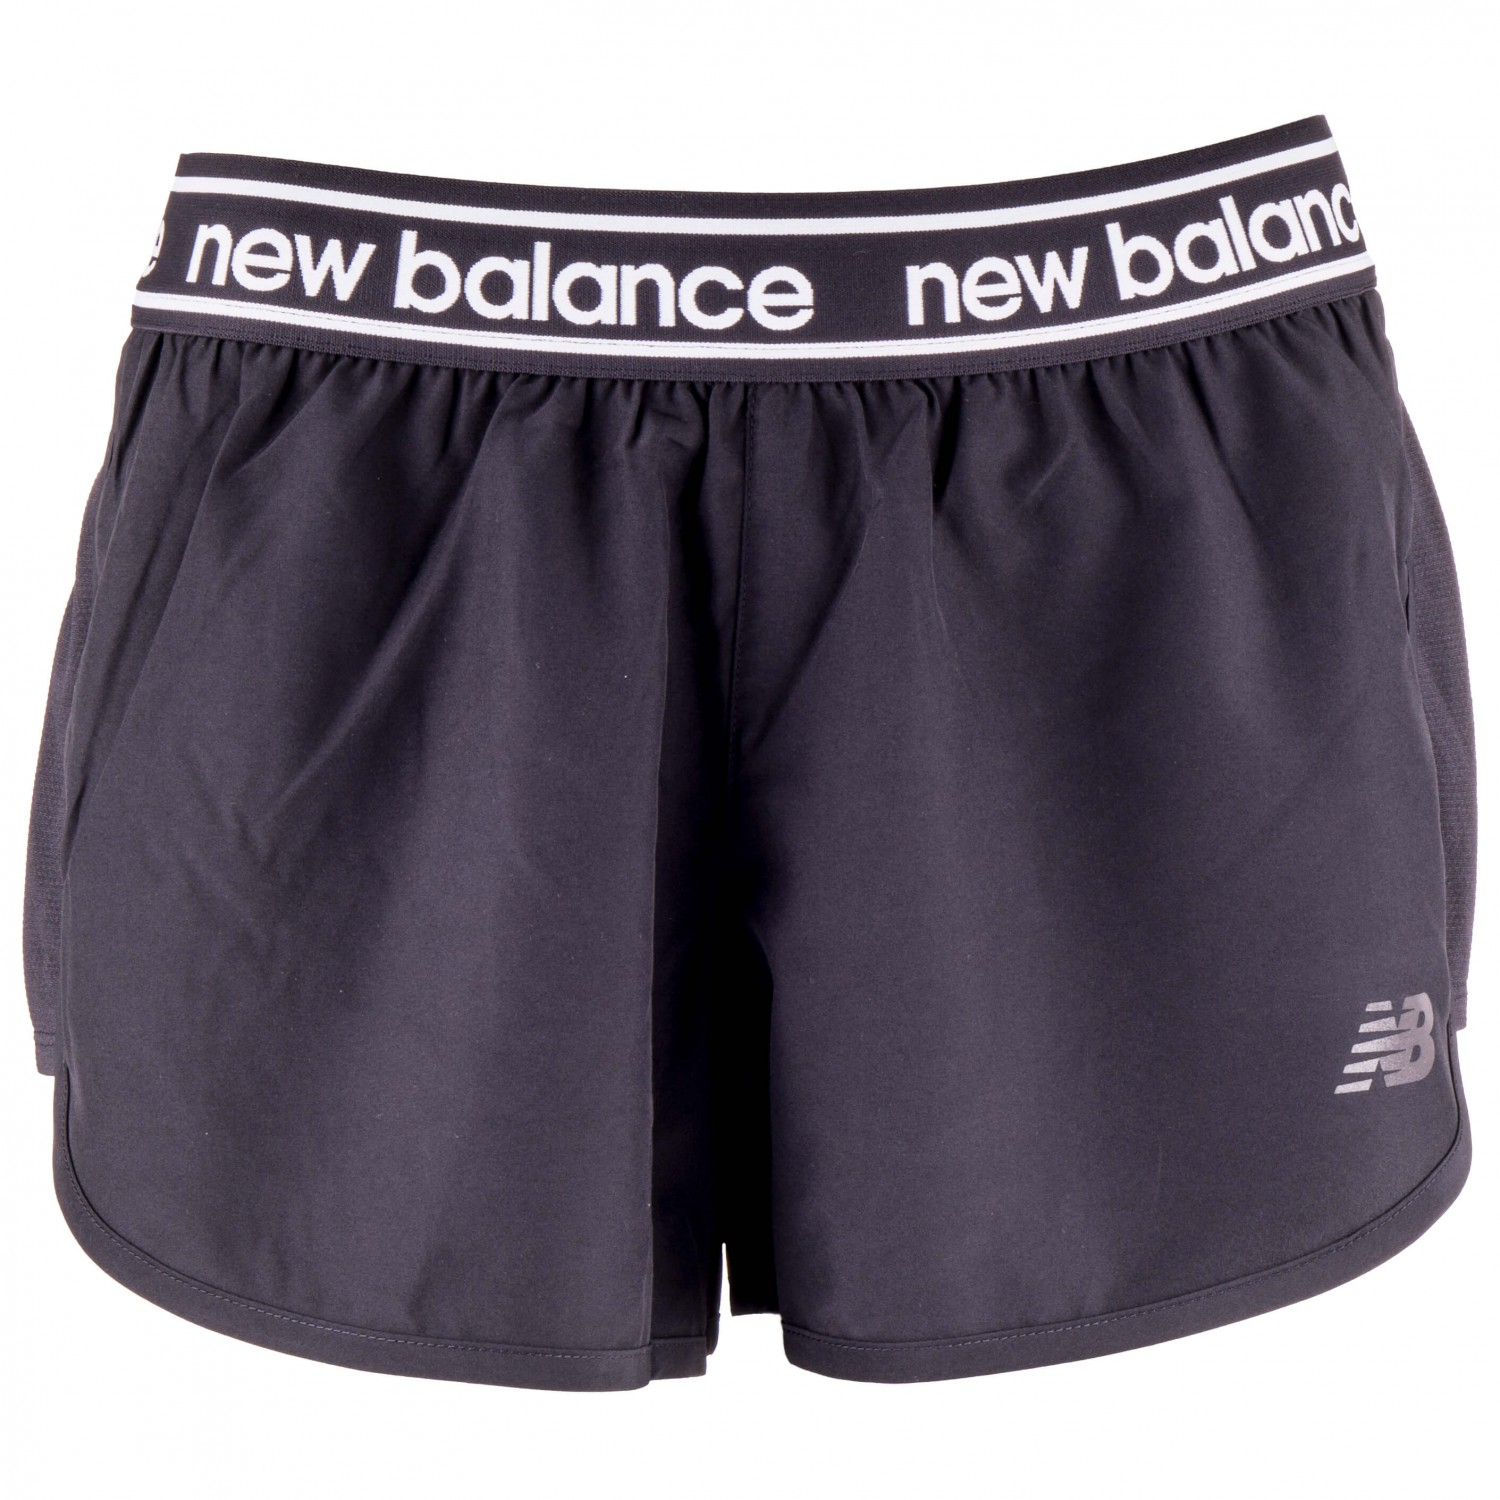 low priced 727c5 3c160 New Balance Accelerate 2.5 Short - Running Shorts Women's ...